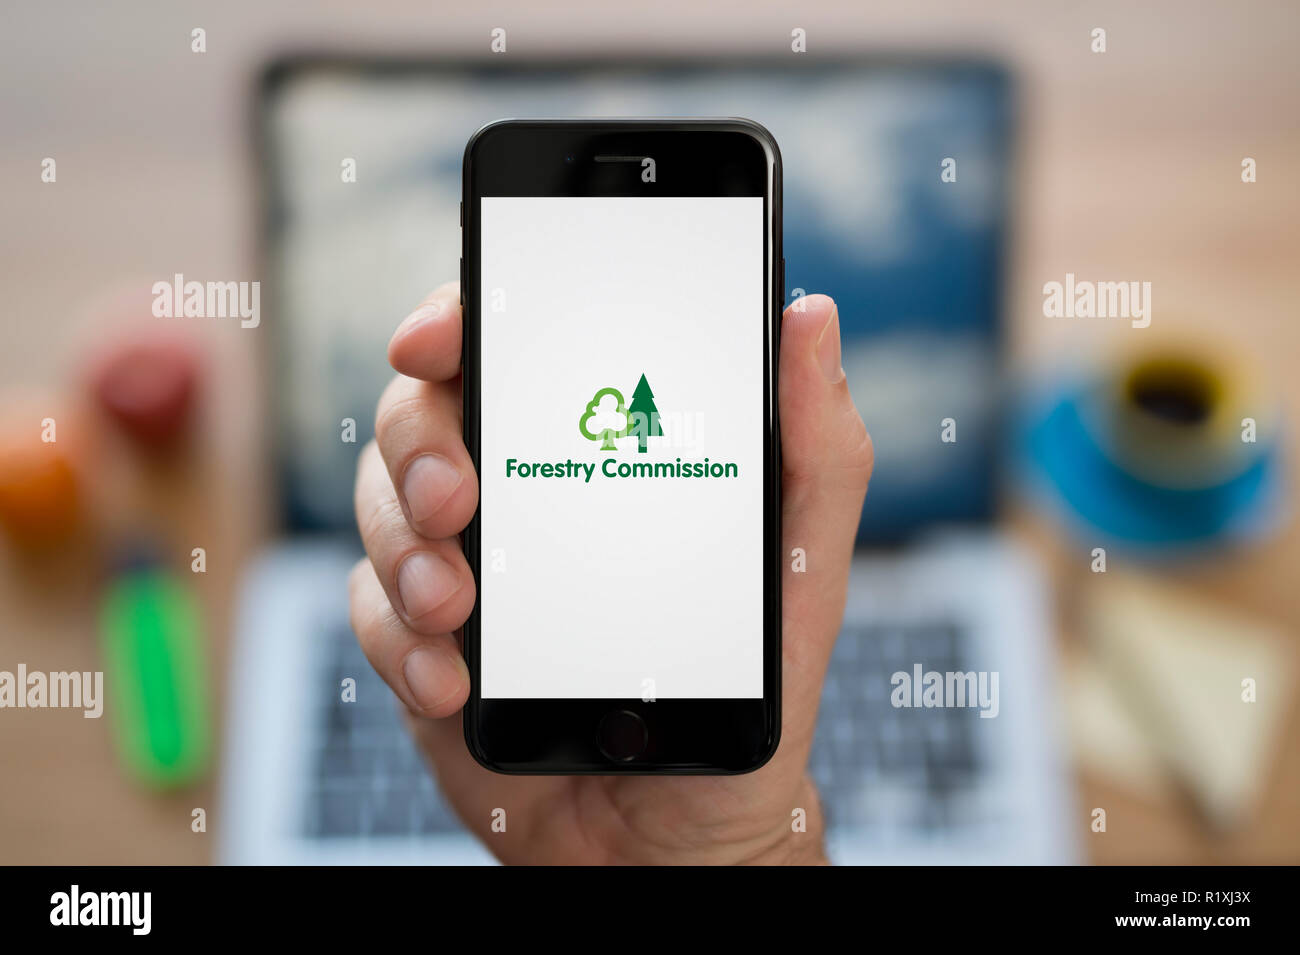 A man looks at his iPhone which displays the Forestry Commission logo, while sat at his computer desk (Editorial use only). - Stock Image